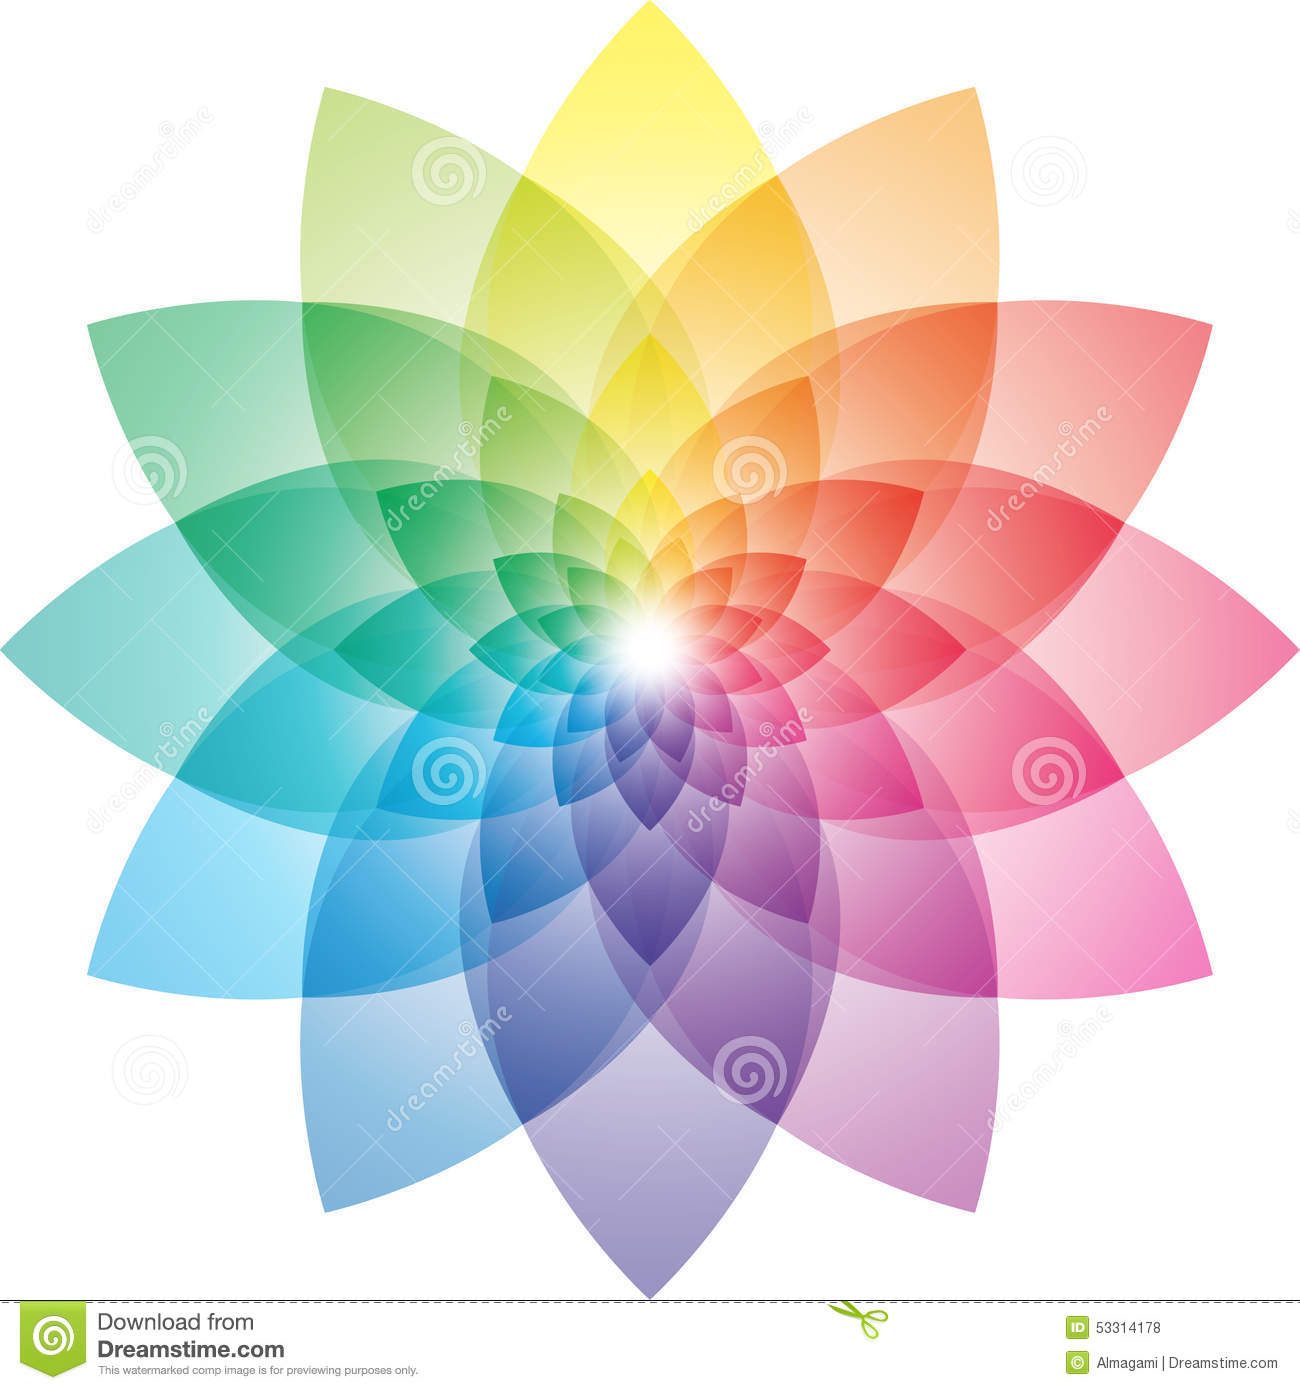 Lotus Flower Color Wheel Stock Vector Illustration Of Blue 53314178